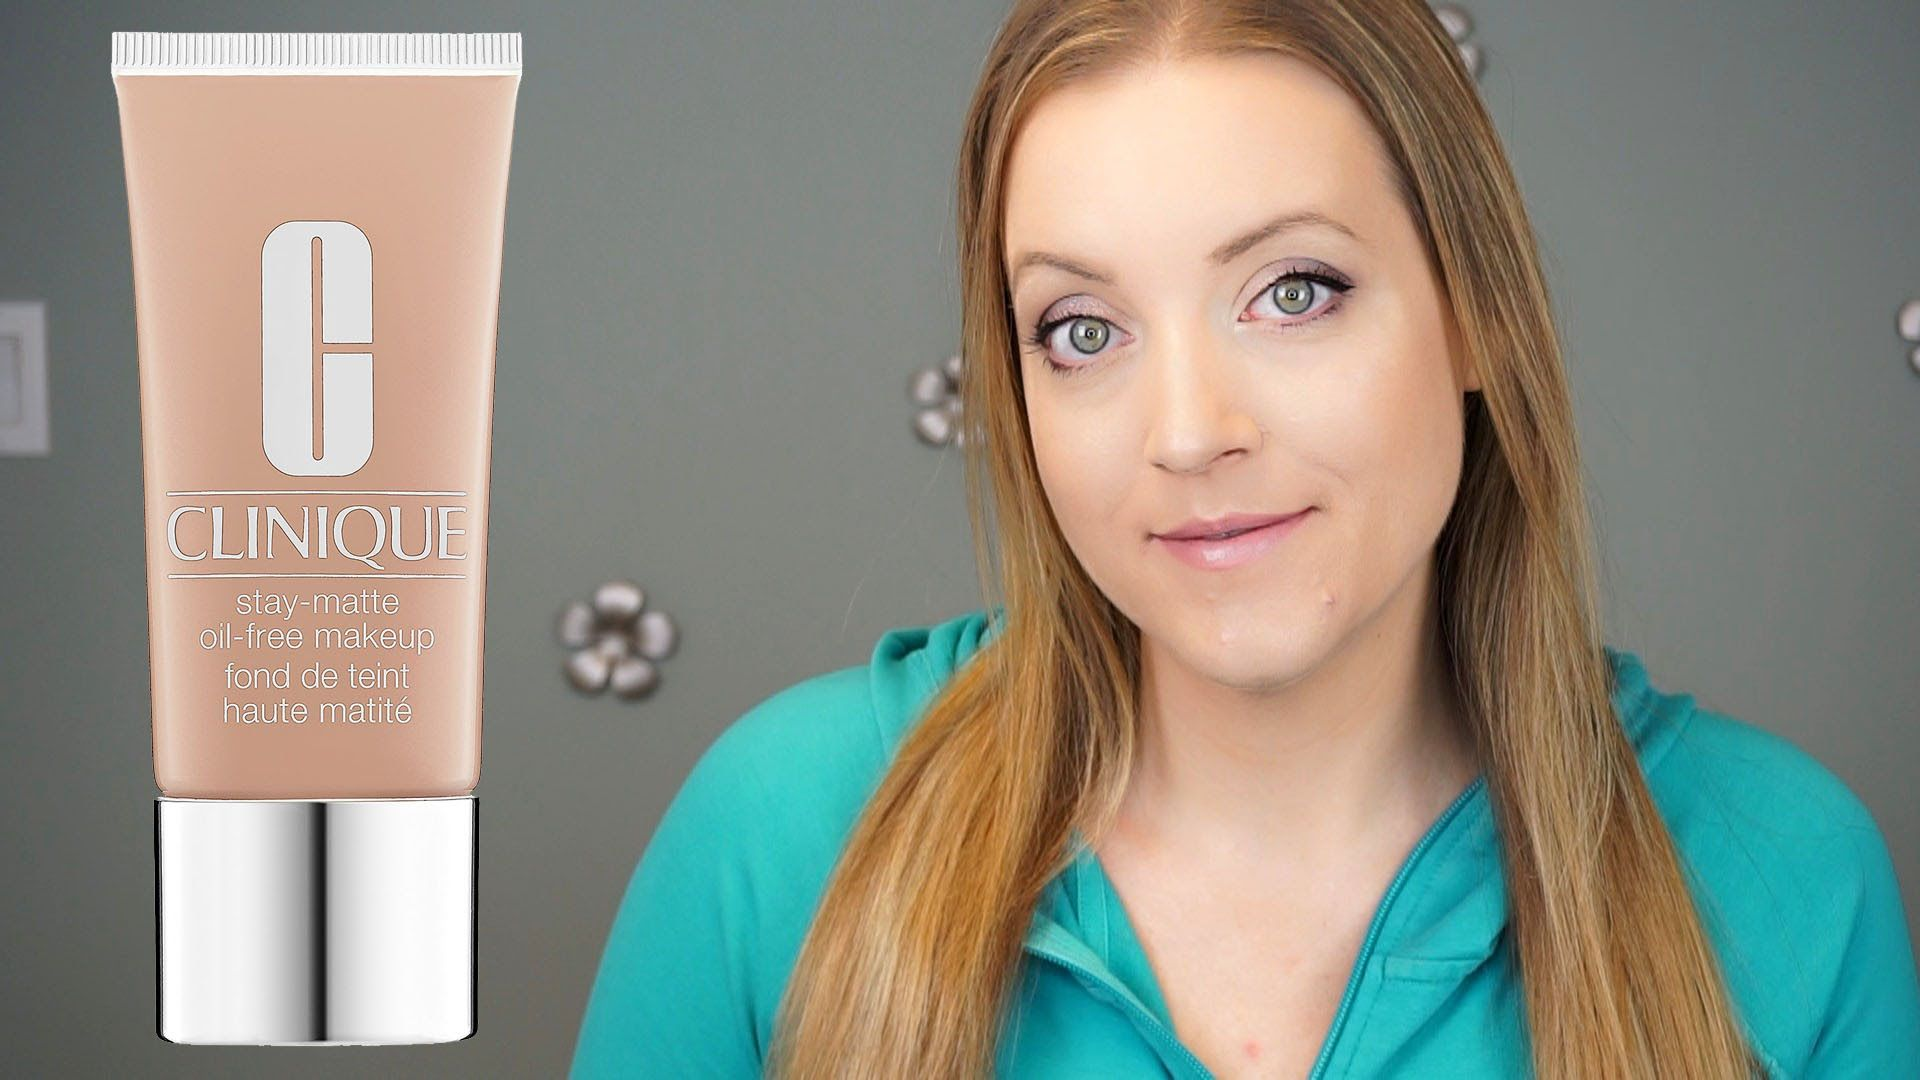 Highly Recommend Says Beauty Vlogger Allison S Vanity About